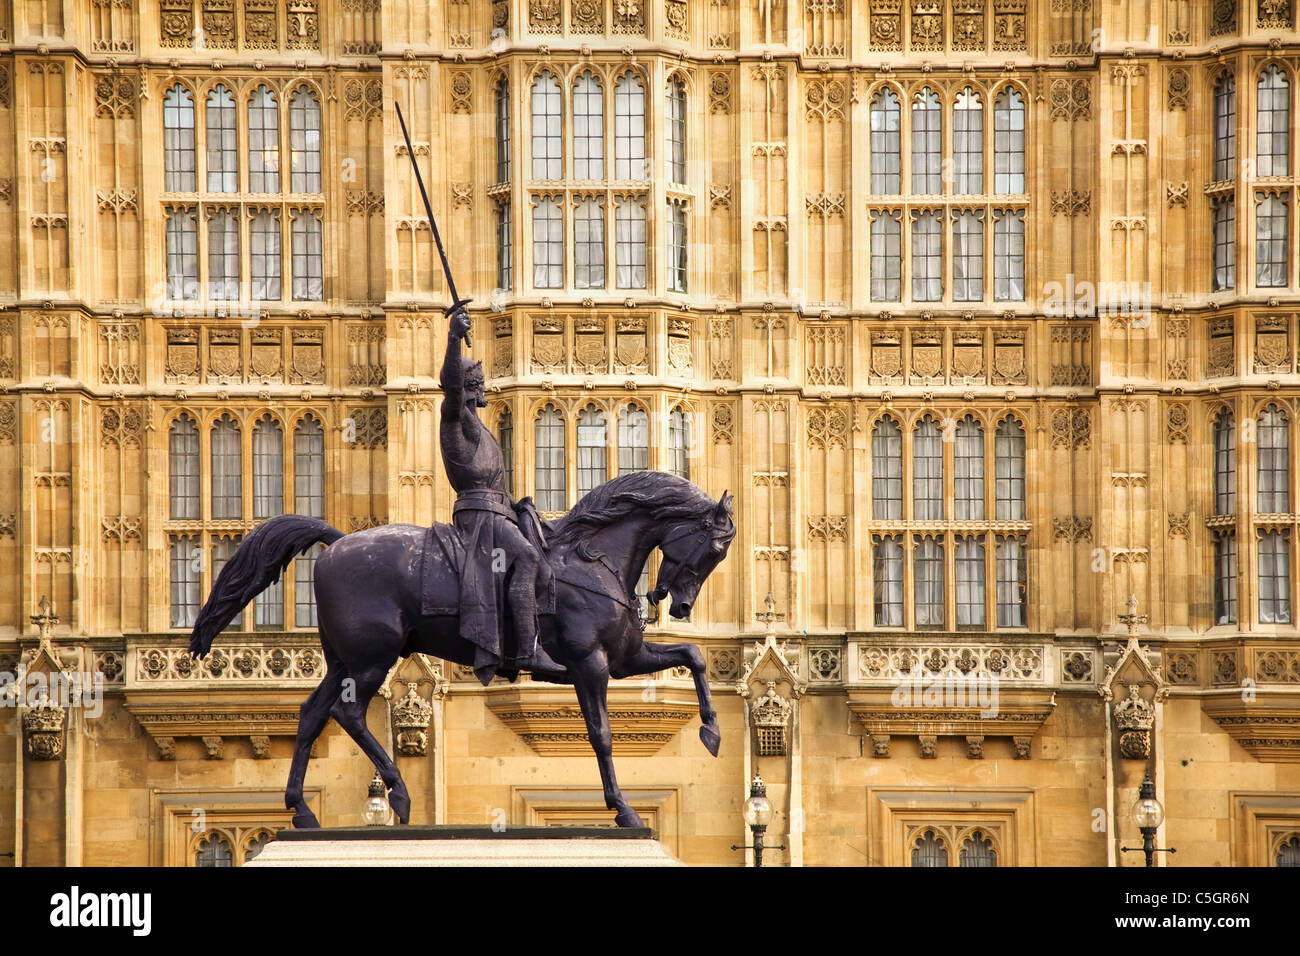 Bronze statue of Richard the Lionheart by Carlo Marochetti in the forecourt of the Palace of Westminster London - Stock Image